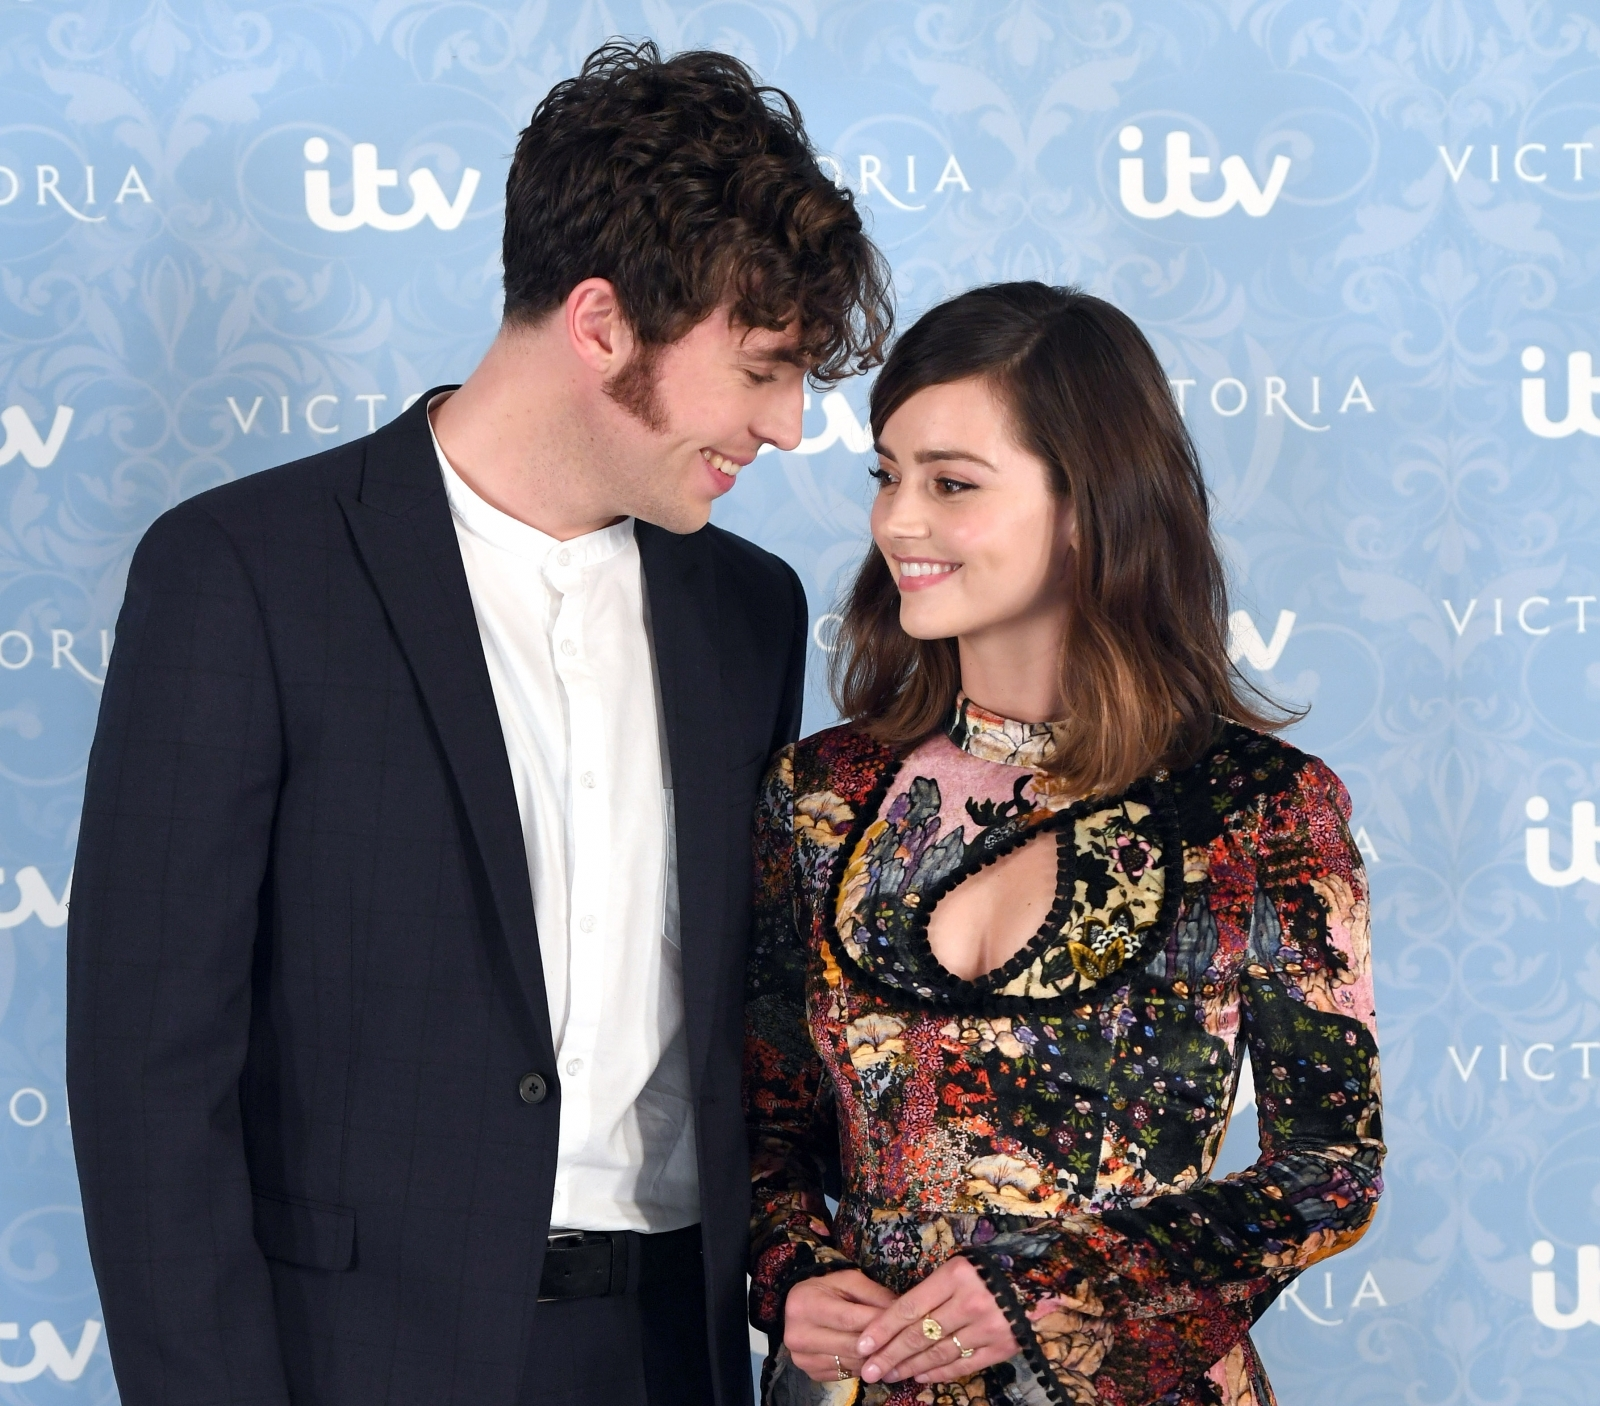 Victoria's Jenna Coleman hints at engagement to Tom Hughes